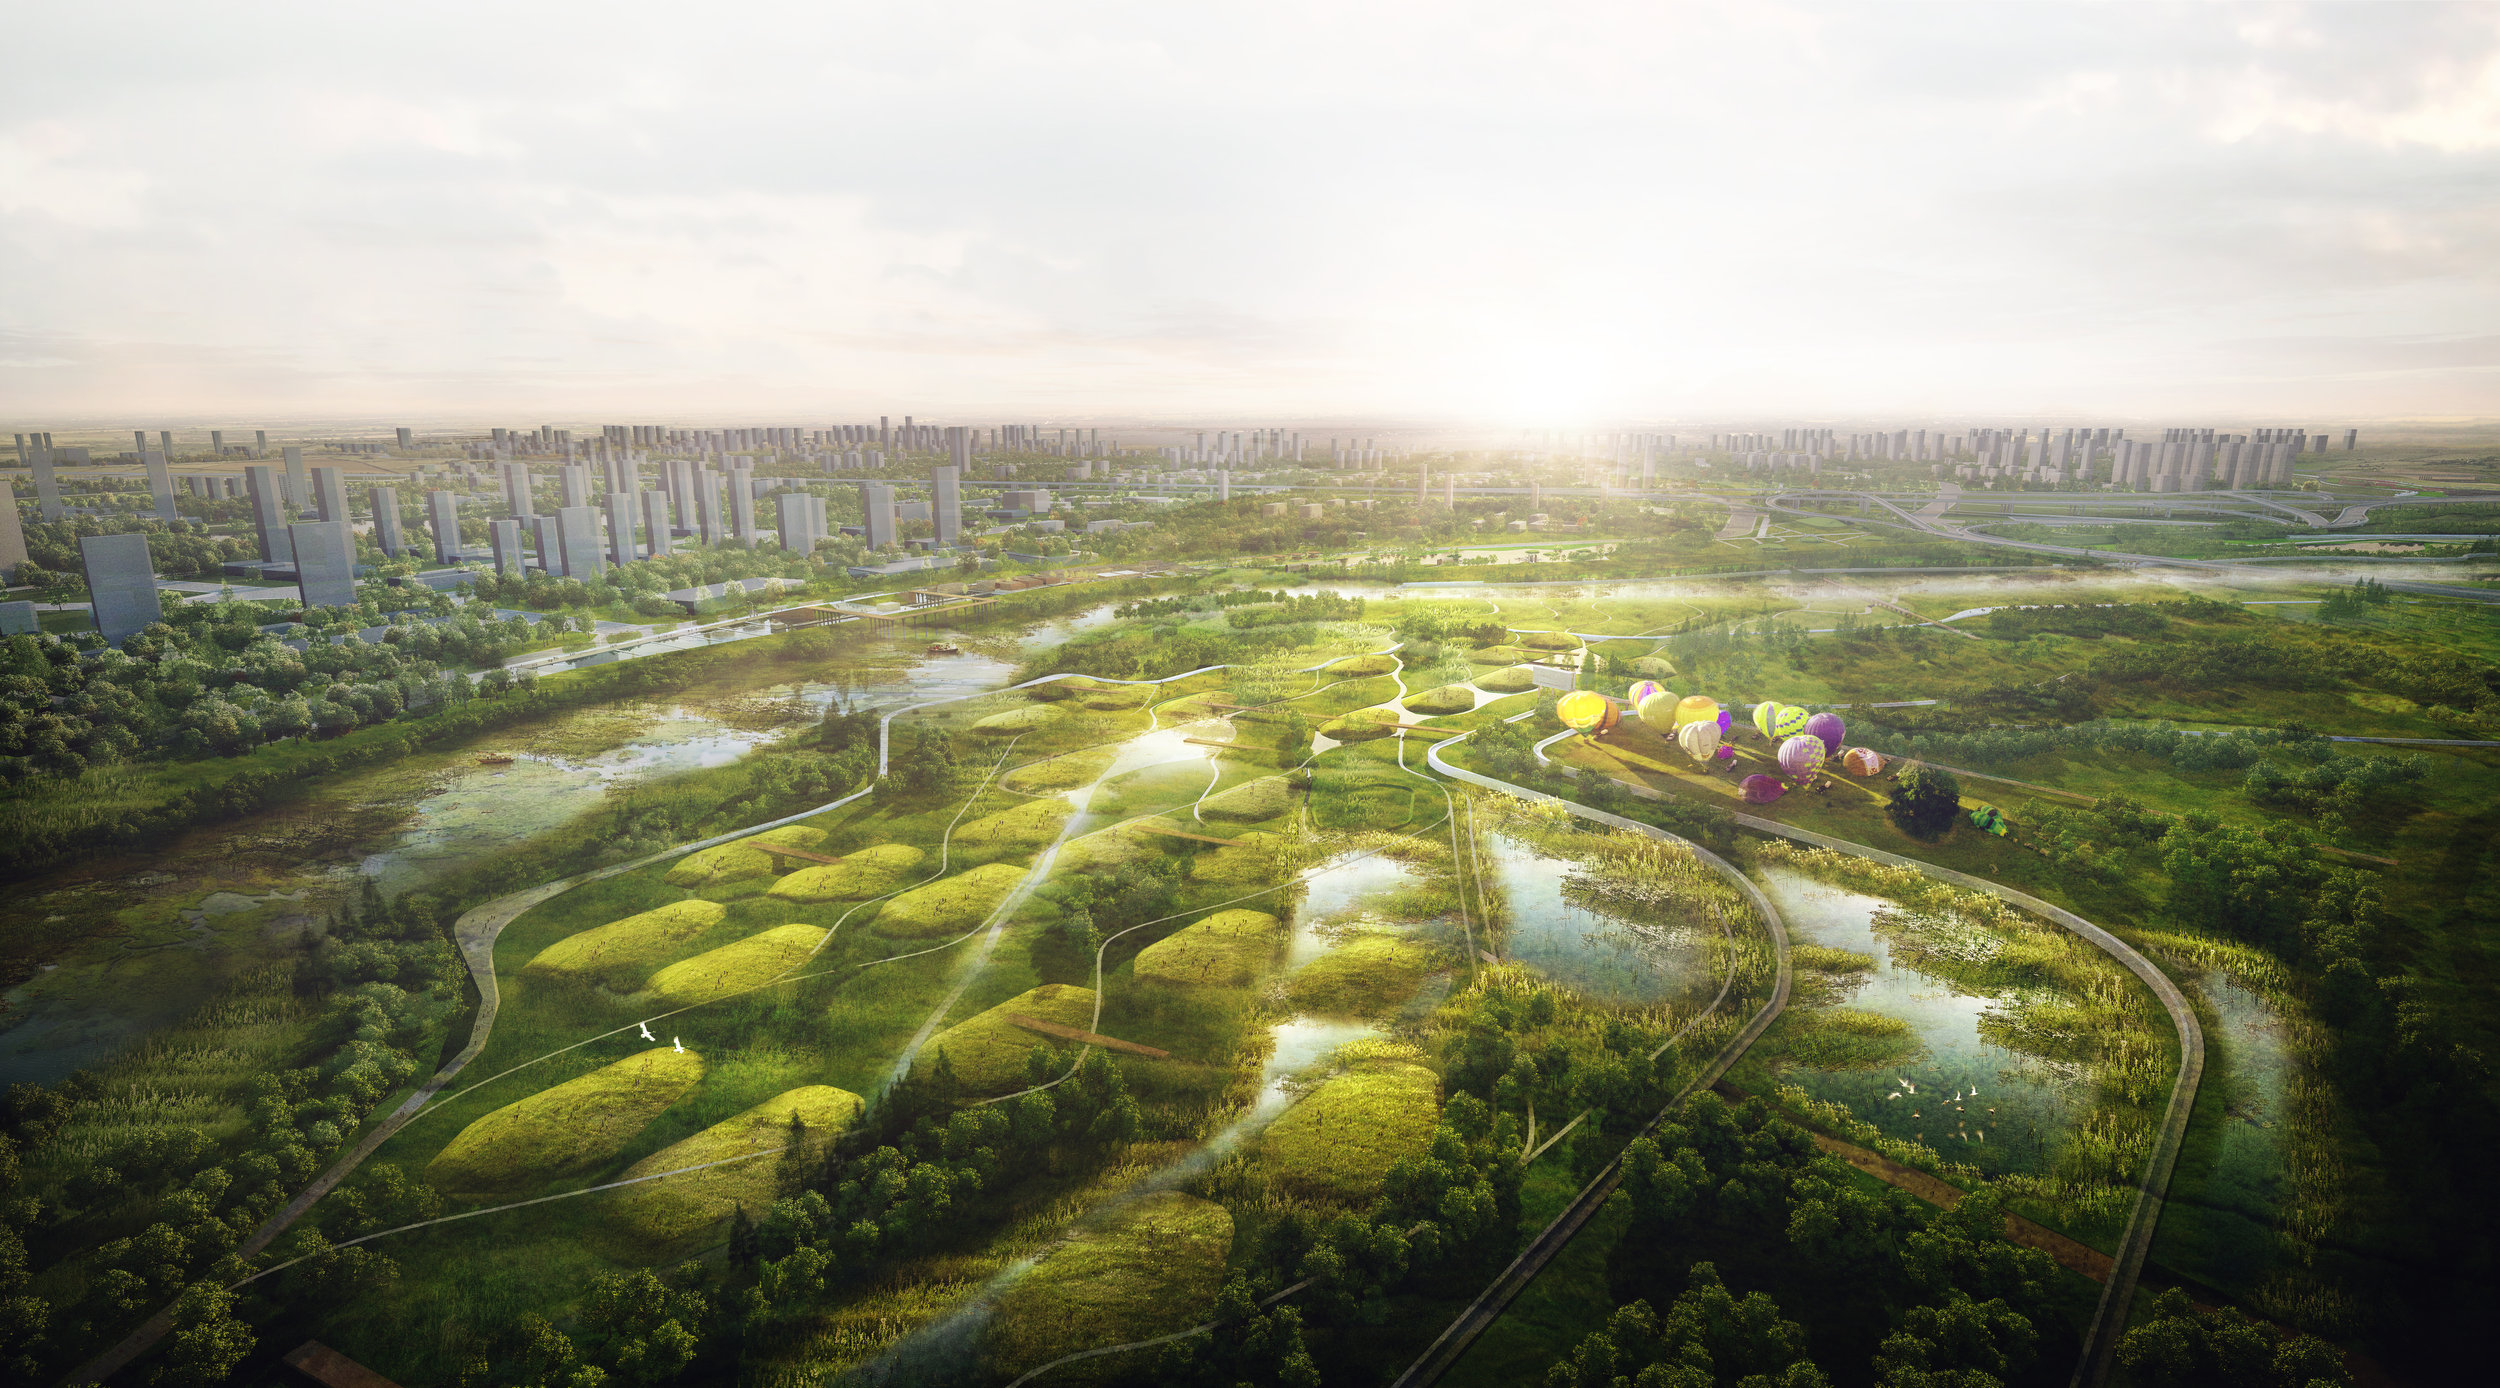 Gossamer's design creates an active ecological spine and world class waterfront for greater Xi'an.